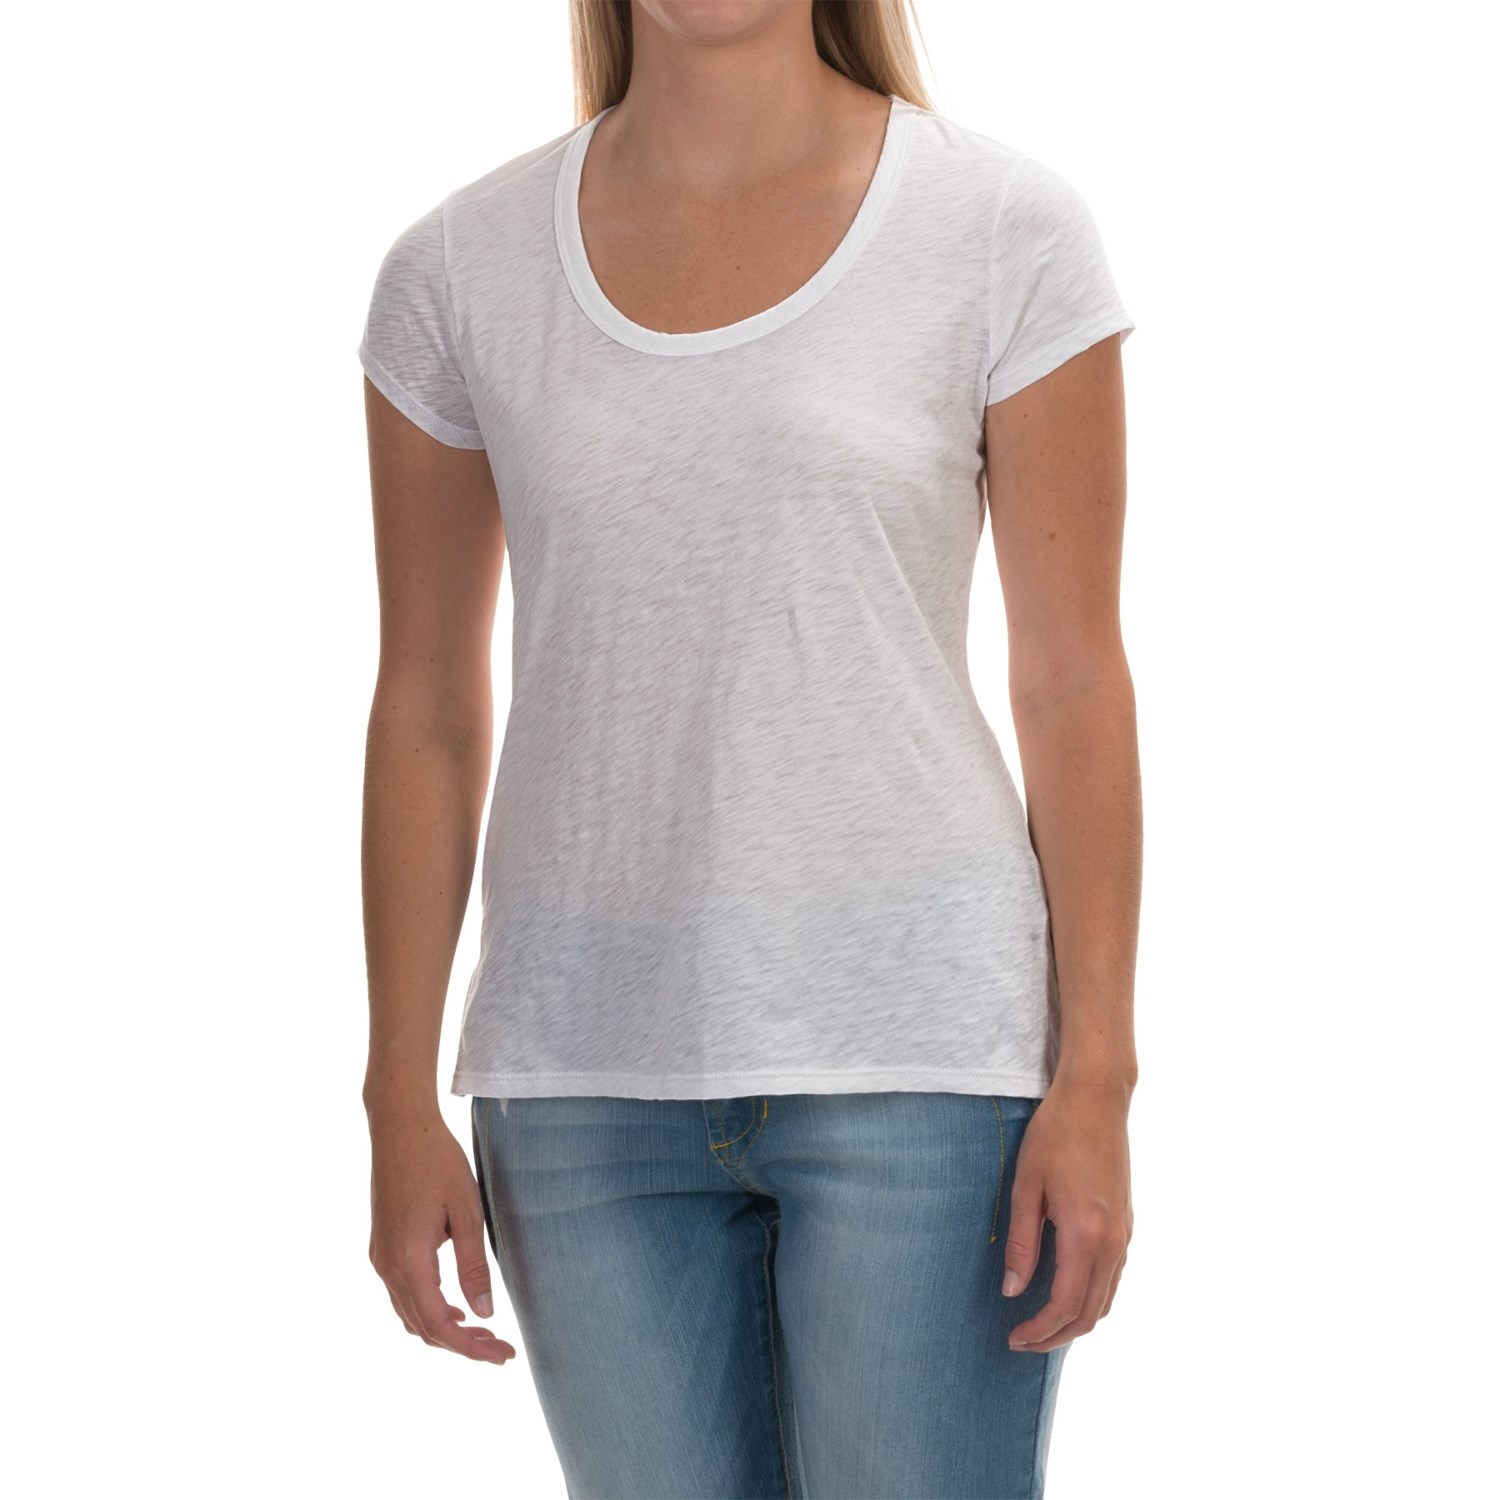 Mercer and madison pima cotton t shirt for women save 37 for Pima cotton tee shirts